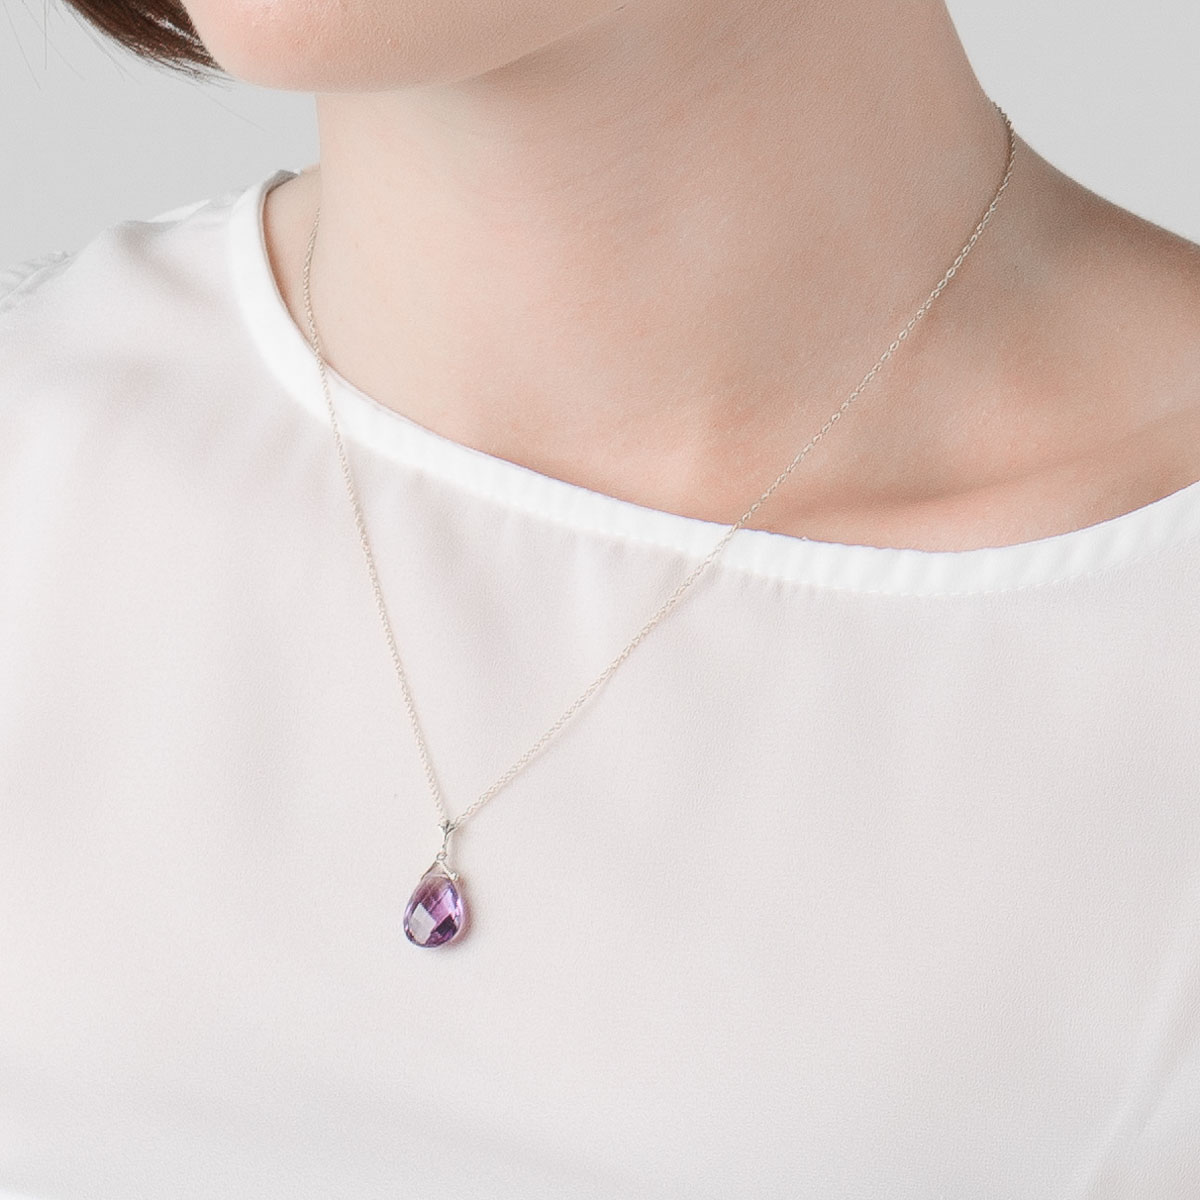 Amethyst Droplet Pendant Necklace 5.1 ct in 9ct White Gold